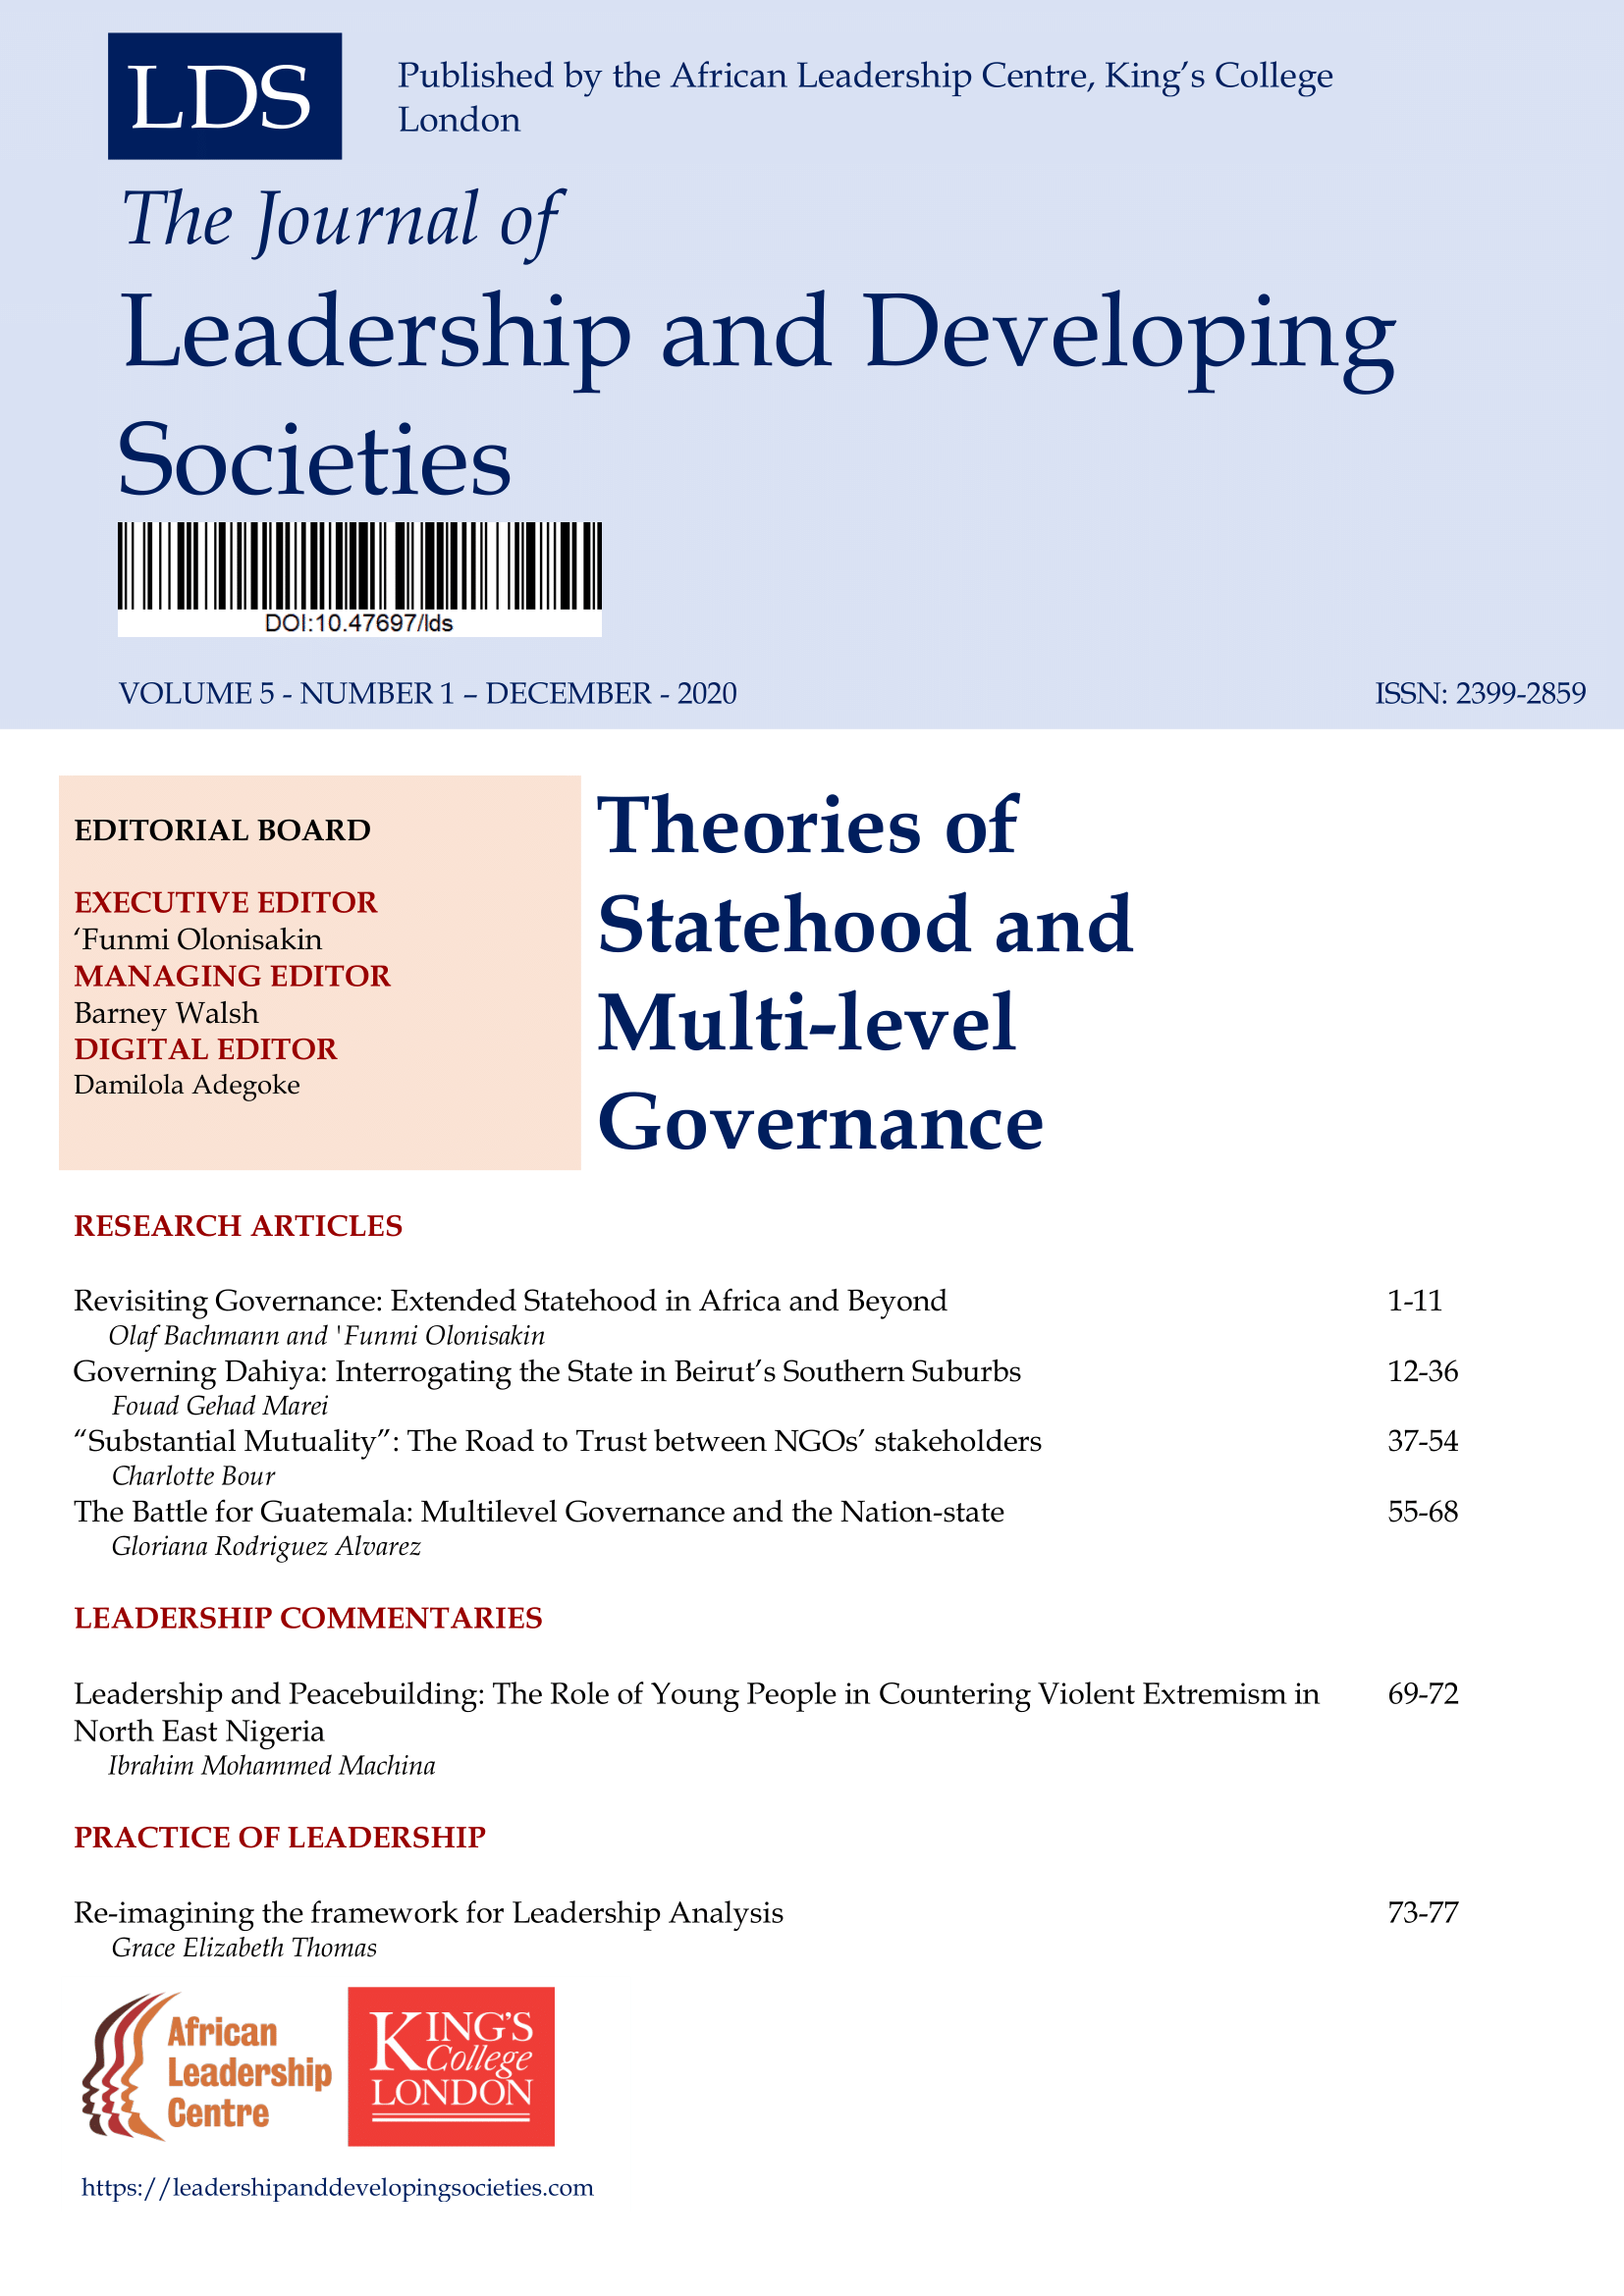 View Vol. 5 No. 1 (2020): Theories of Statehood and Multi-level Governance